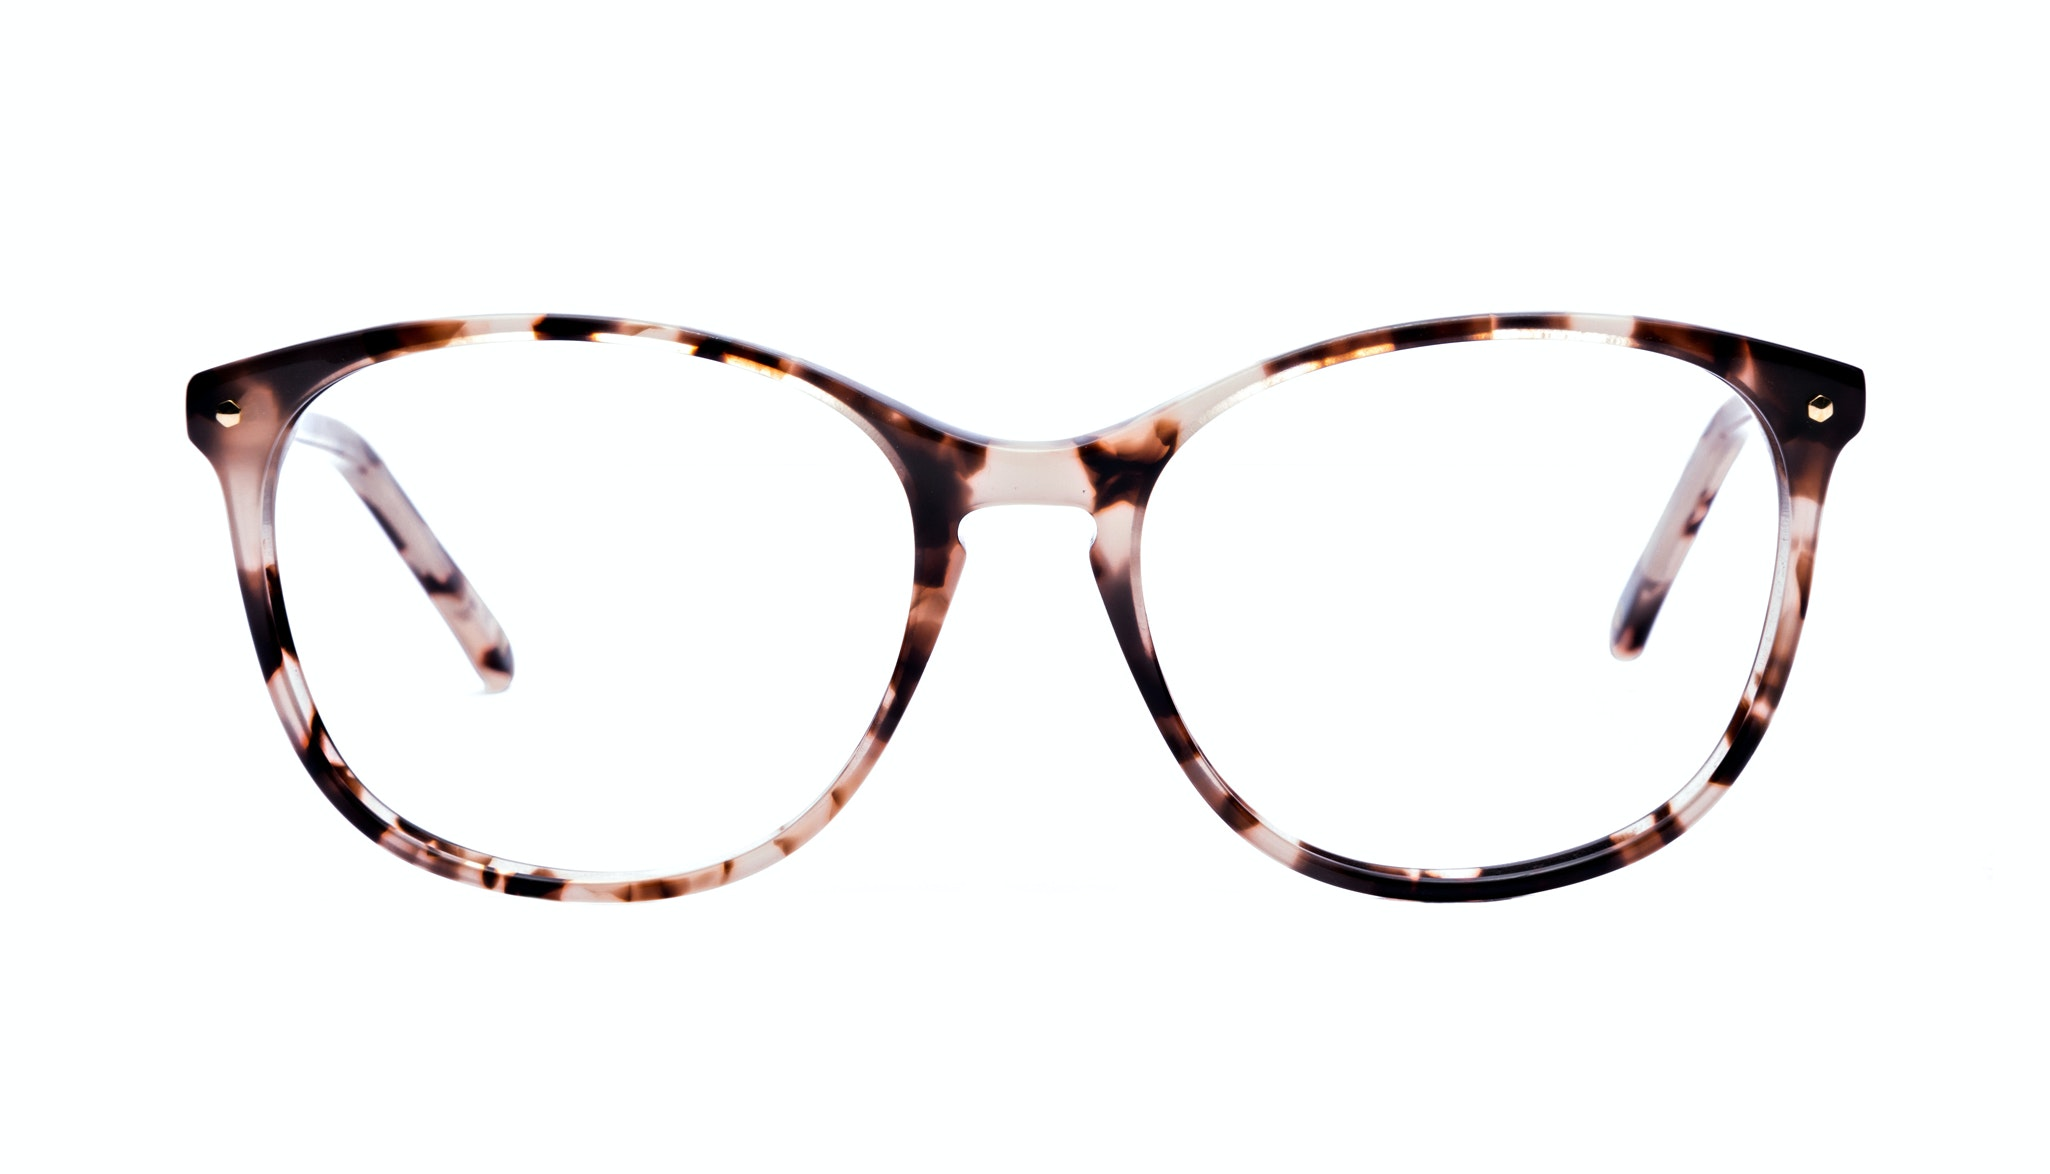 Affordable Fashion Glasses Rectangle Square Round Eyeglasses Women Nadine Pink Tortoise